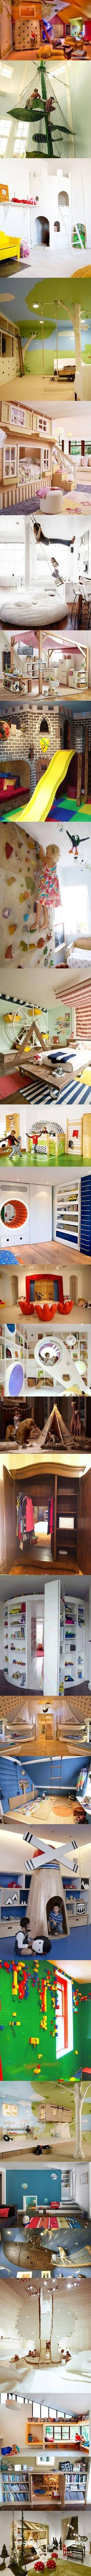 creative kid's rooms. Would be fun to have one of these in my house